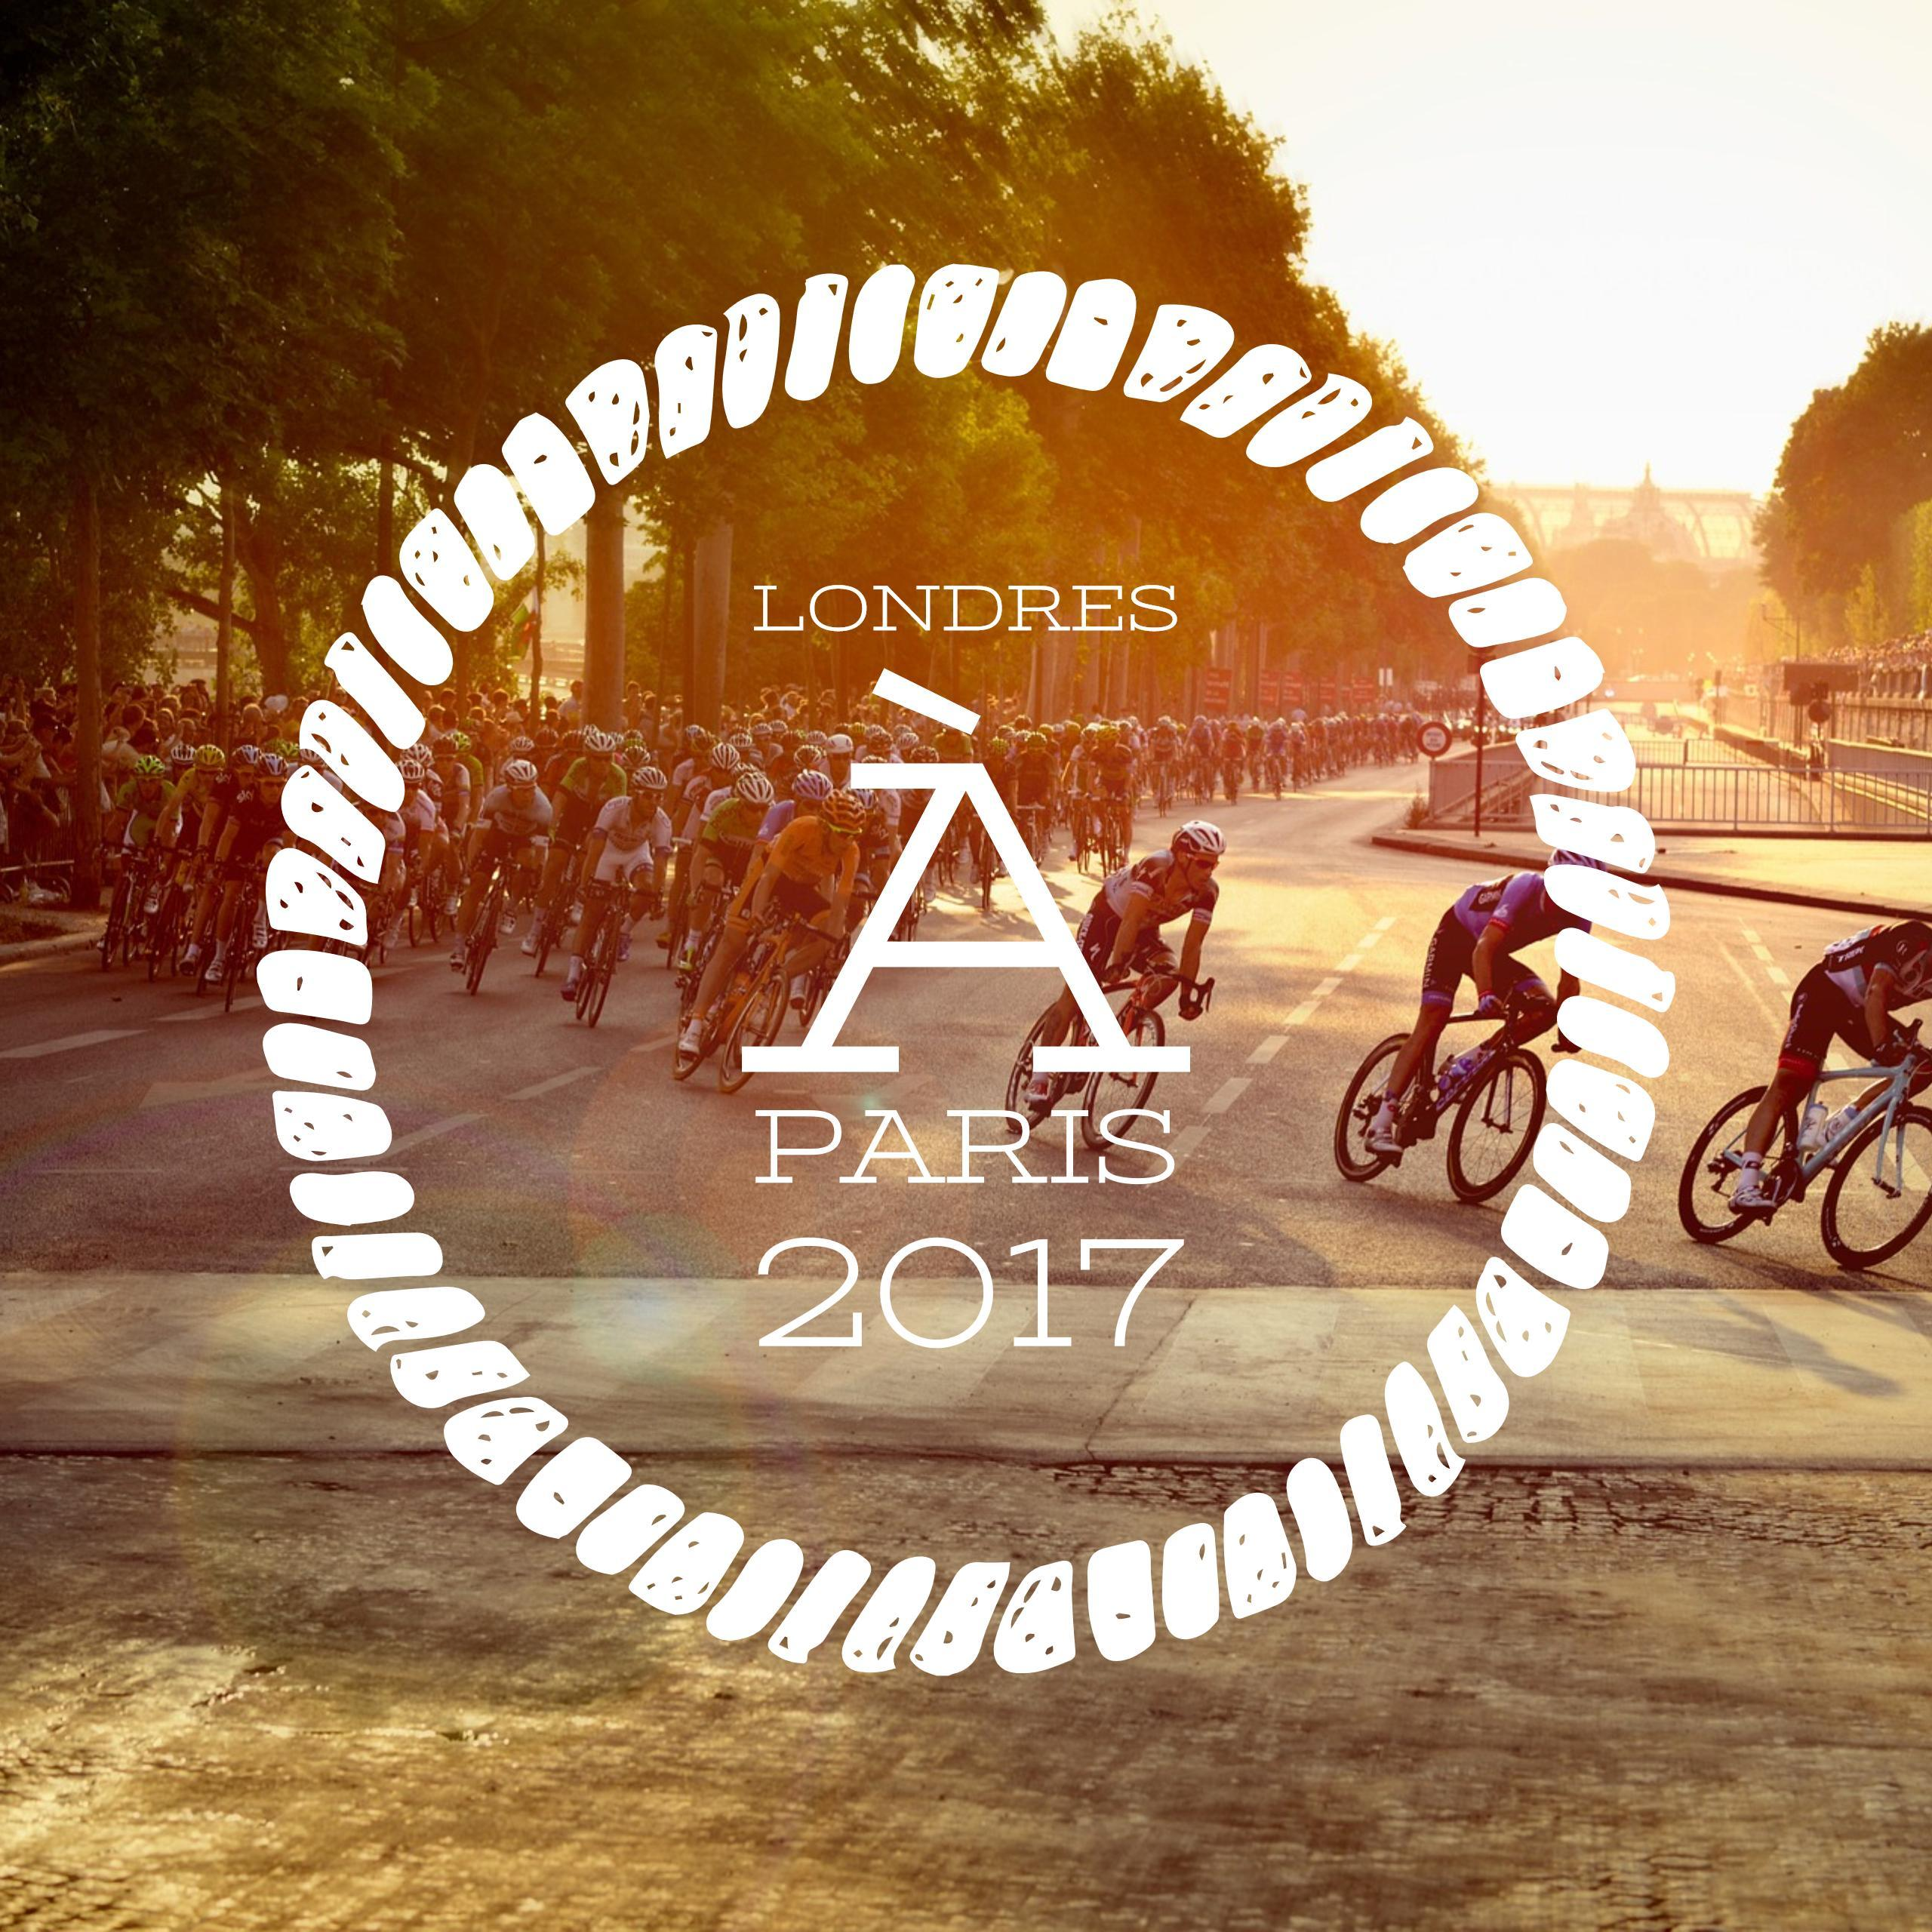 London-Paris Cycle Challenge 2018 (Individual/Team)